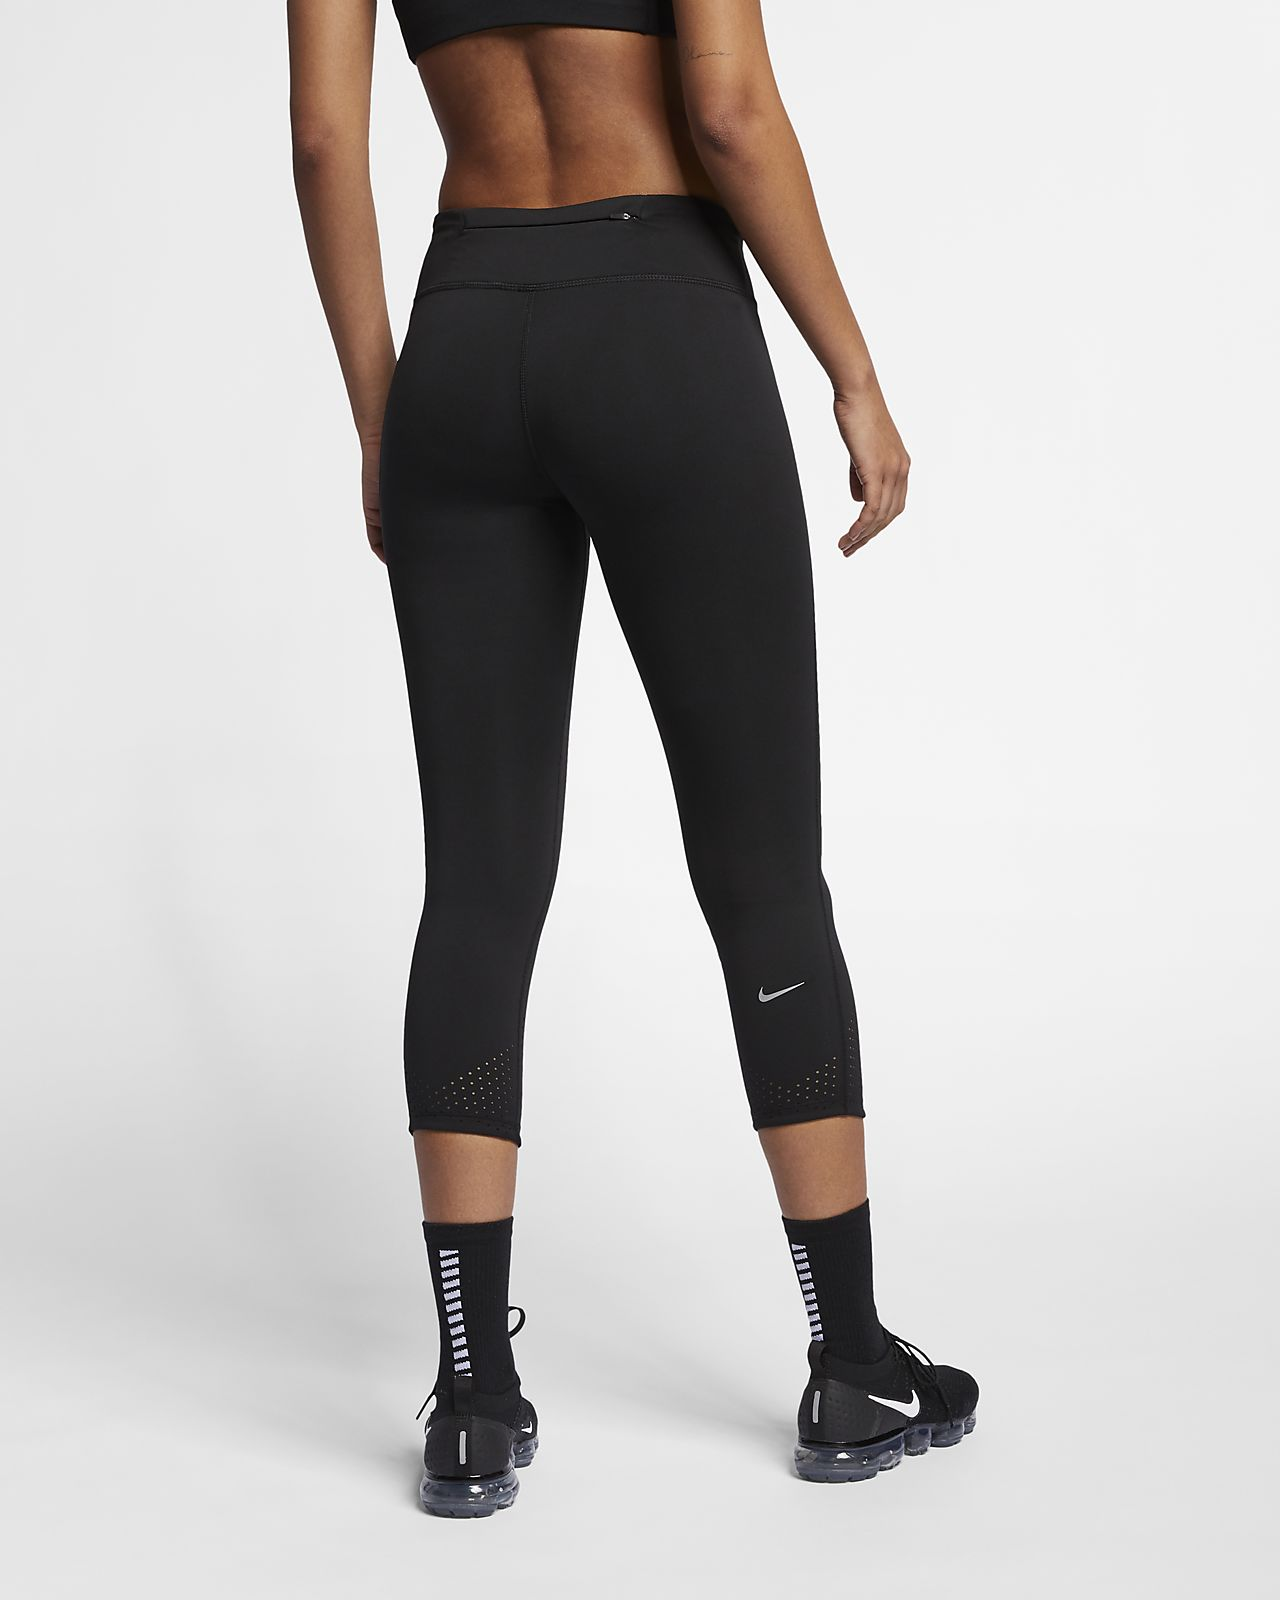 Nike Donna Leggings Outlet Milano 100% Originale Nike